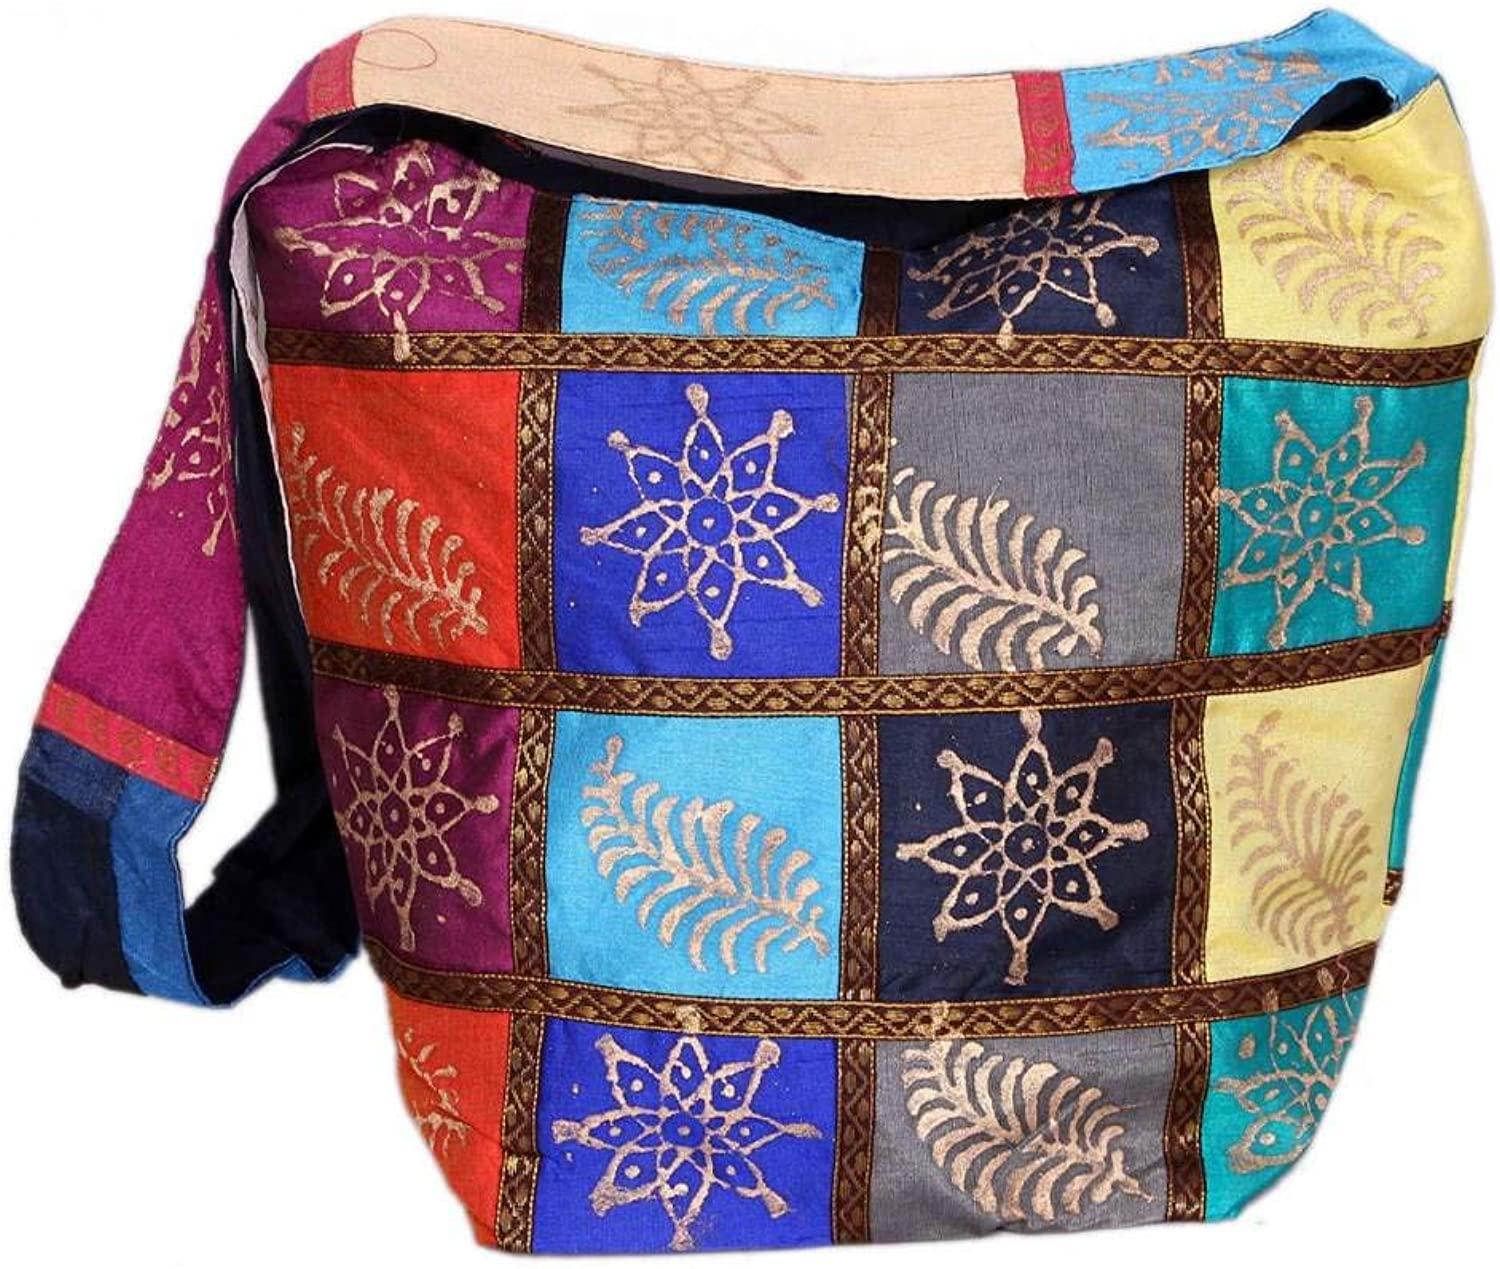 Indian Wholesale 50 pc lot Bulk Mandala Ombre Hippie Assorted Bag Tribal Boho Shoulder & Handbag Ethnic Cotton Messenger Carry Bag With Shoulder Strap Tote Purse For Ladies by Craft Place CAD-72